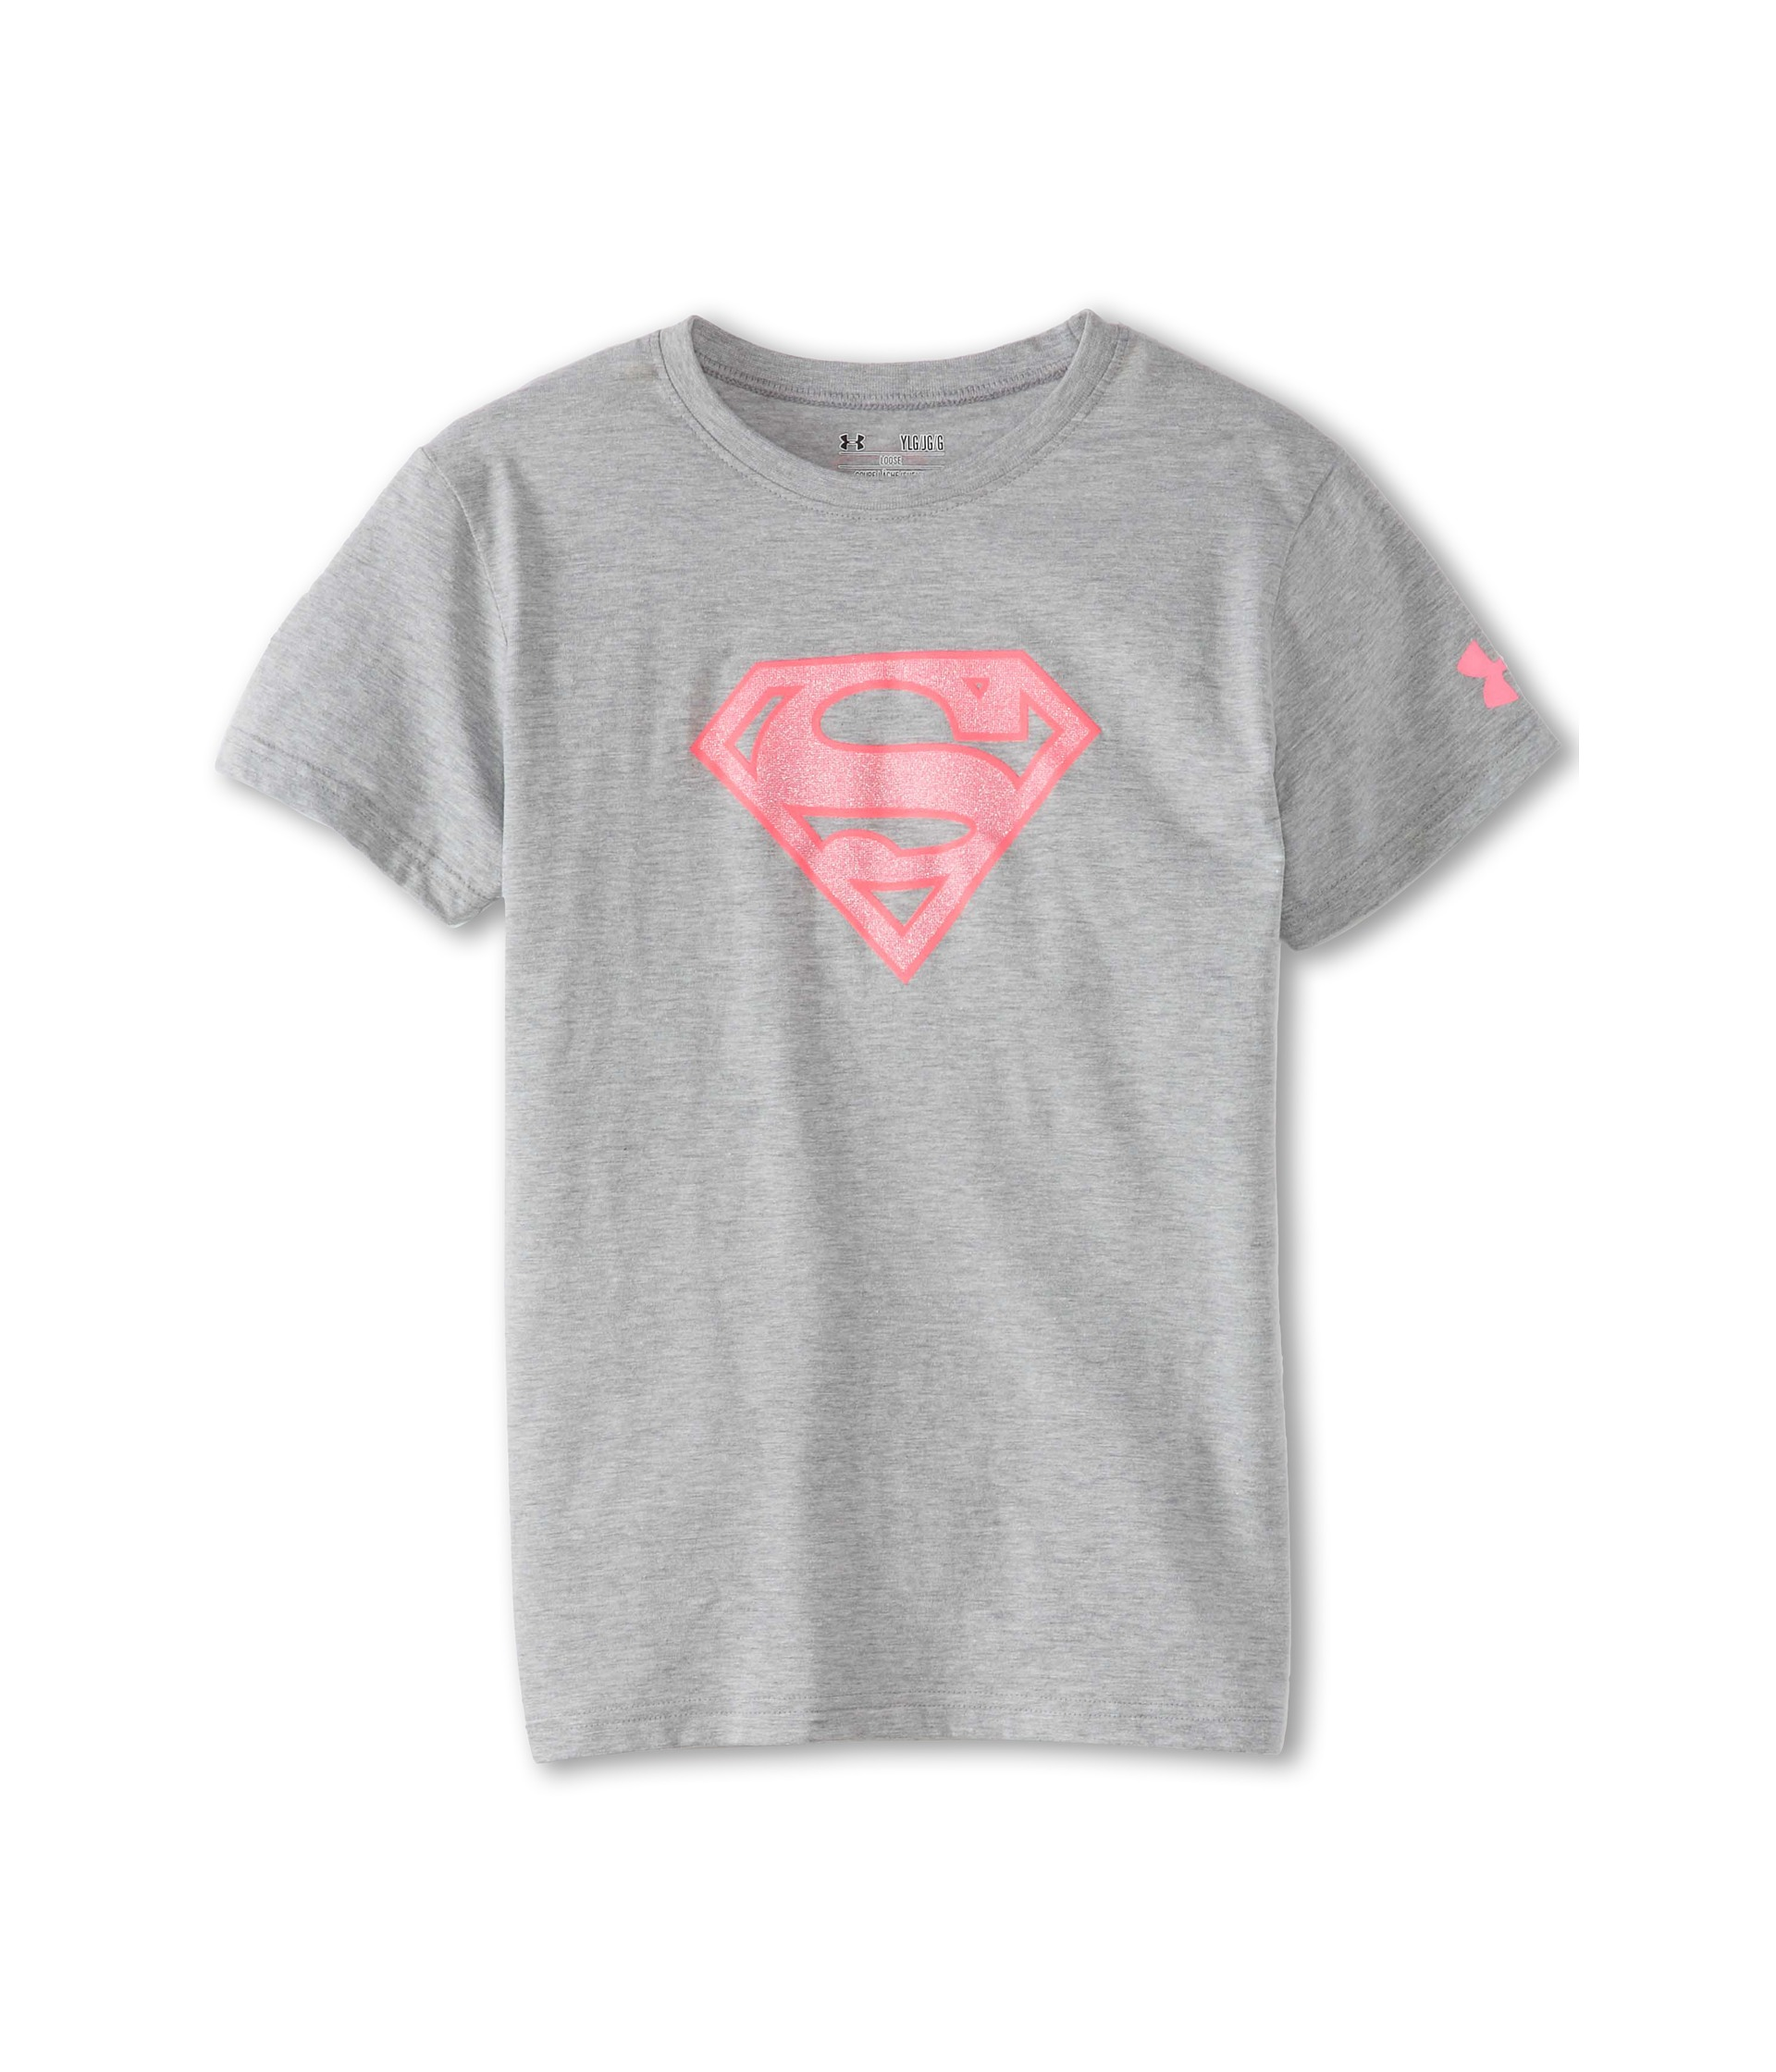 Under armour kids supergirl t shirt big kids grey pink for Under armour shirts for kids